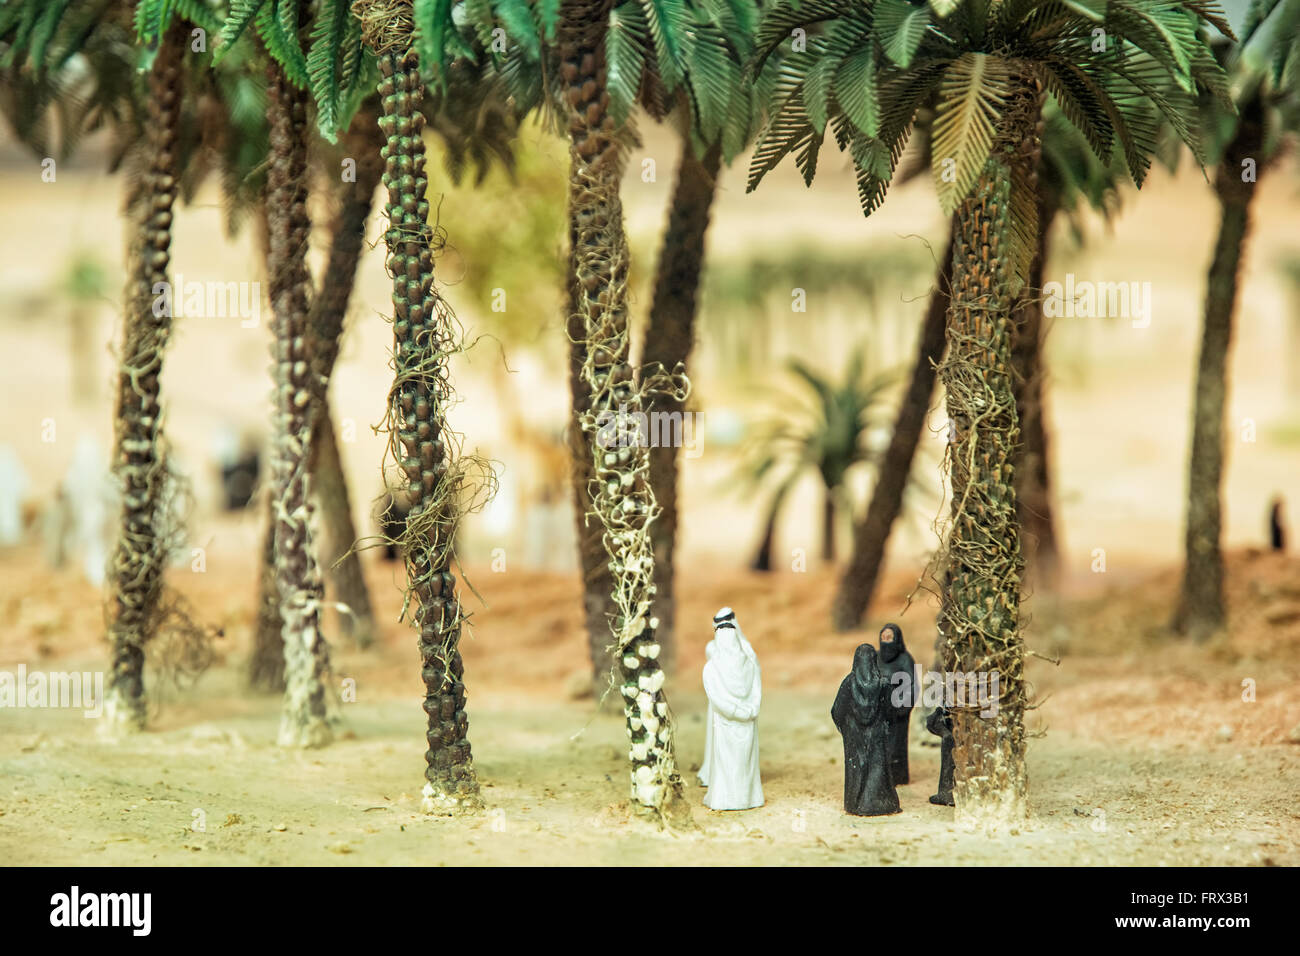 Little Figurines Of Arabs In The Desert Oasis Under The Palm Trees